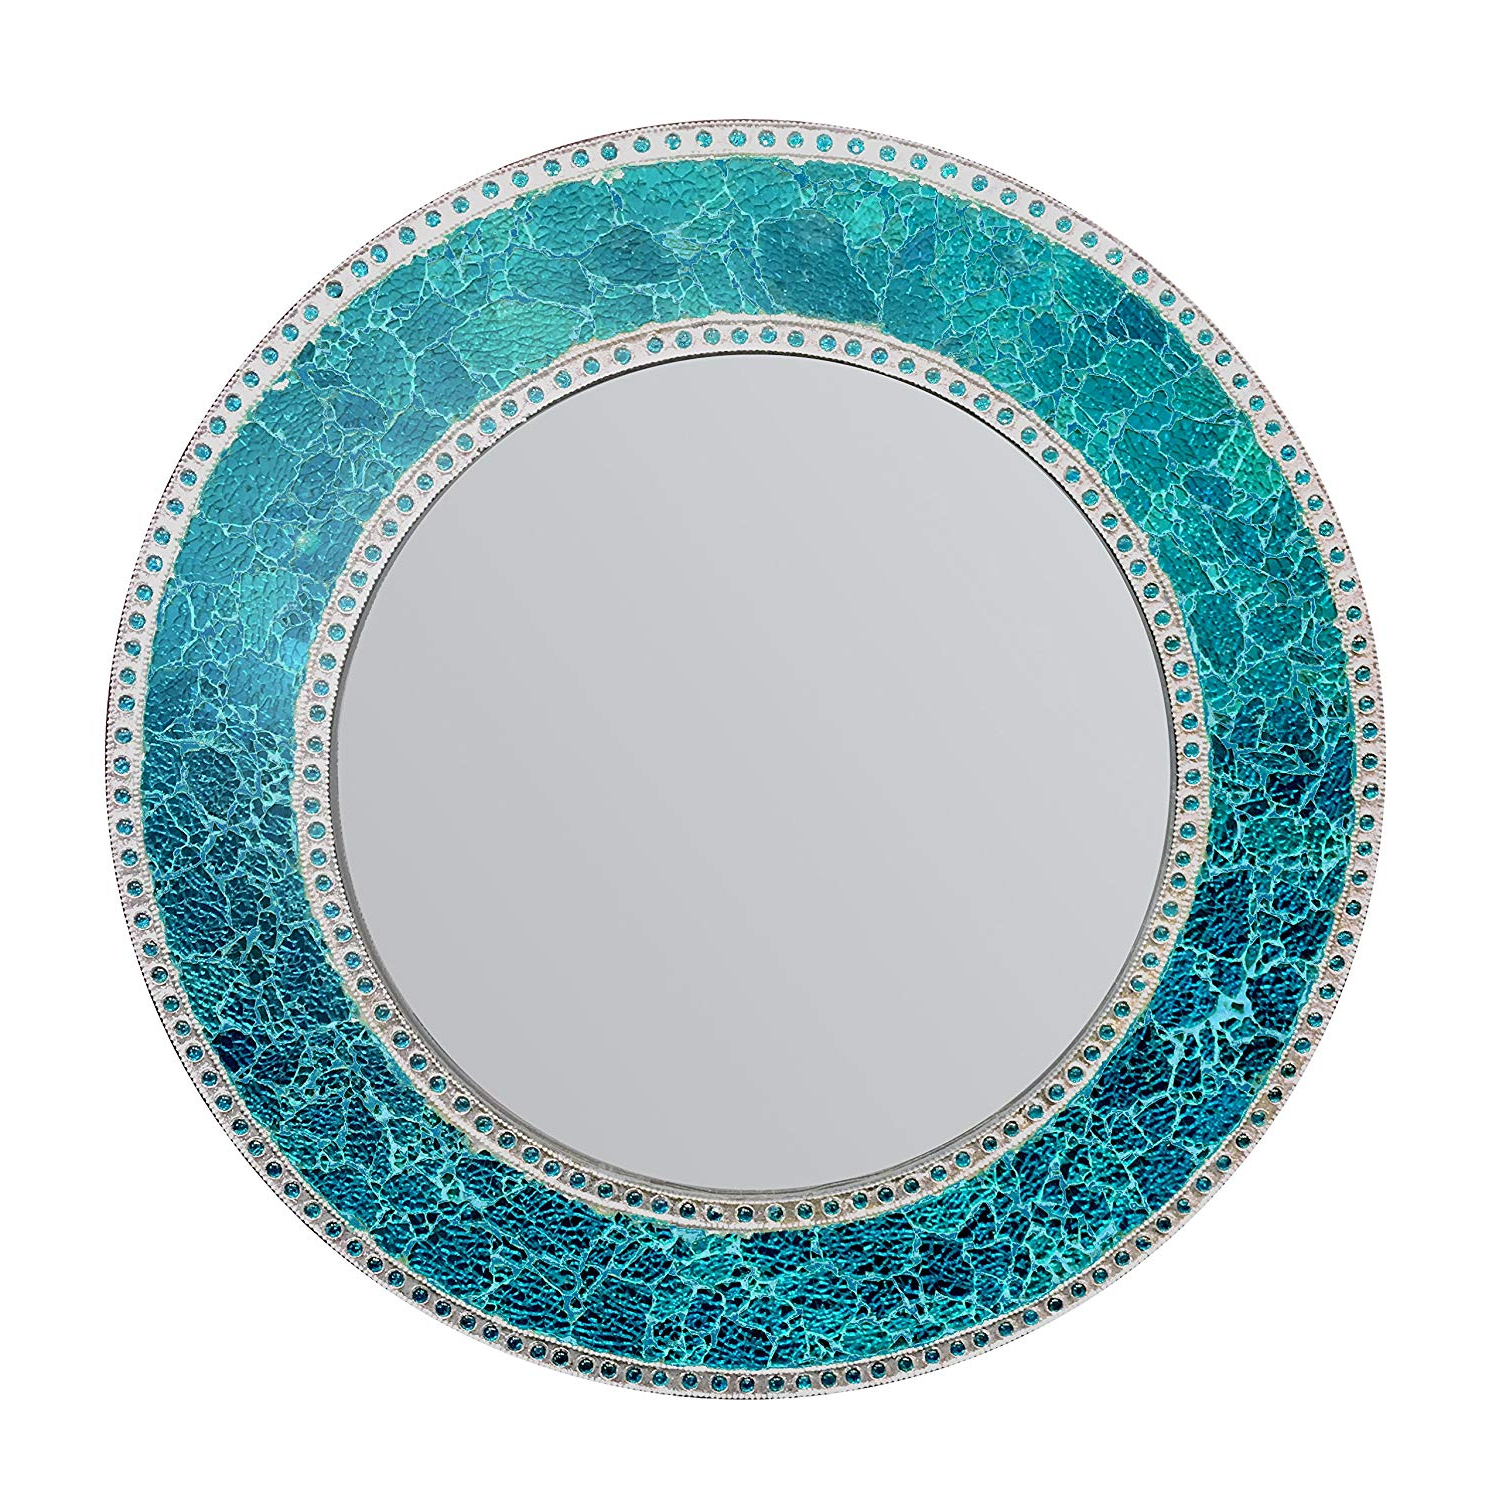 Glass Mosaic Wall Mirrors In Well Liked Decorshore 24 Inch Round Crackled Glass Mosaic Wall Mirror, Sapphire (View 17 of 20)